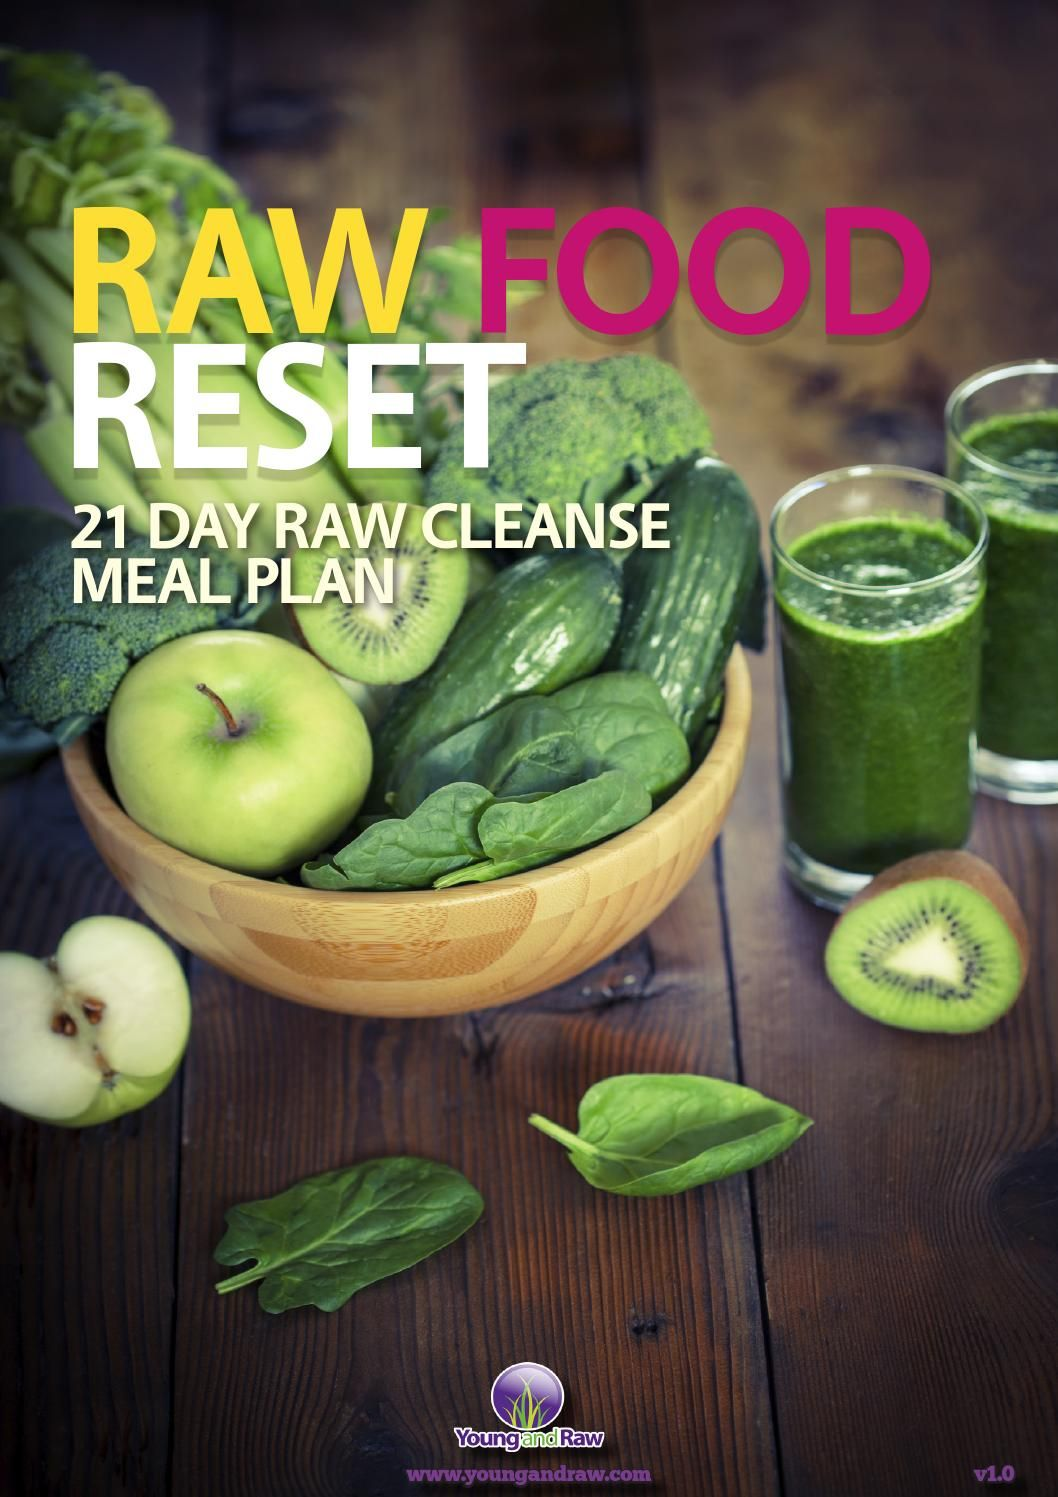 Raw food reset 21 day raw cleanse meal plan this book is awesome raw food reset 21 day raw cleanse meal plan this book is awesome forumfinder Choice Image